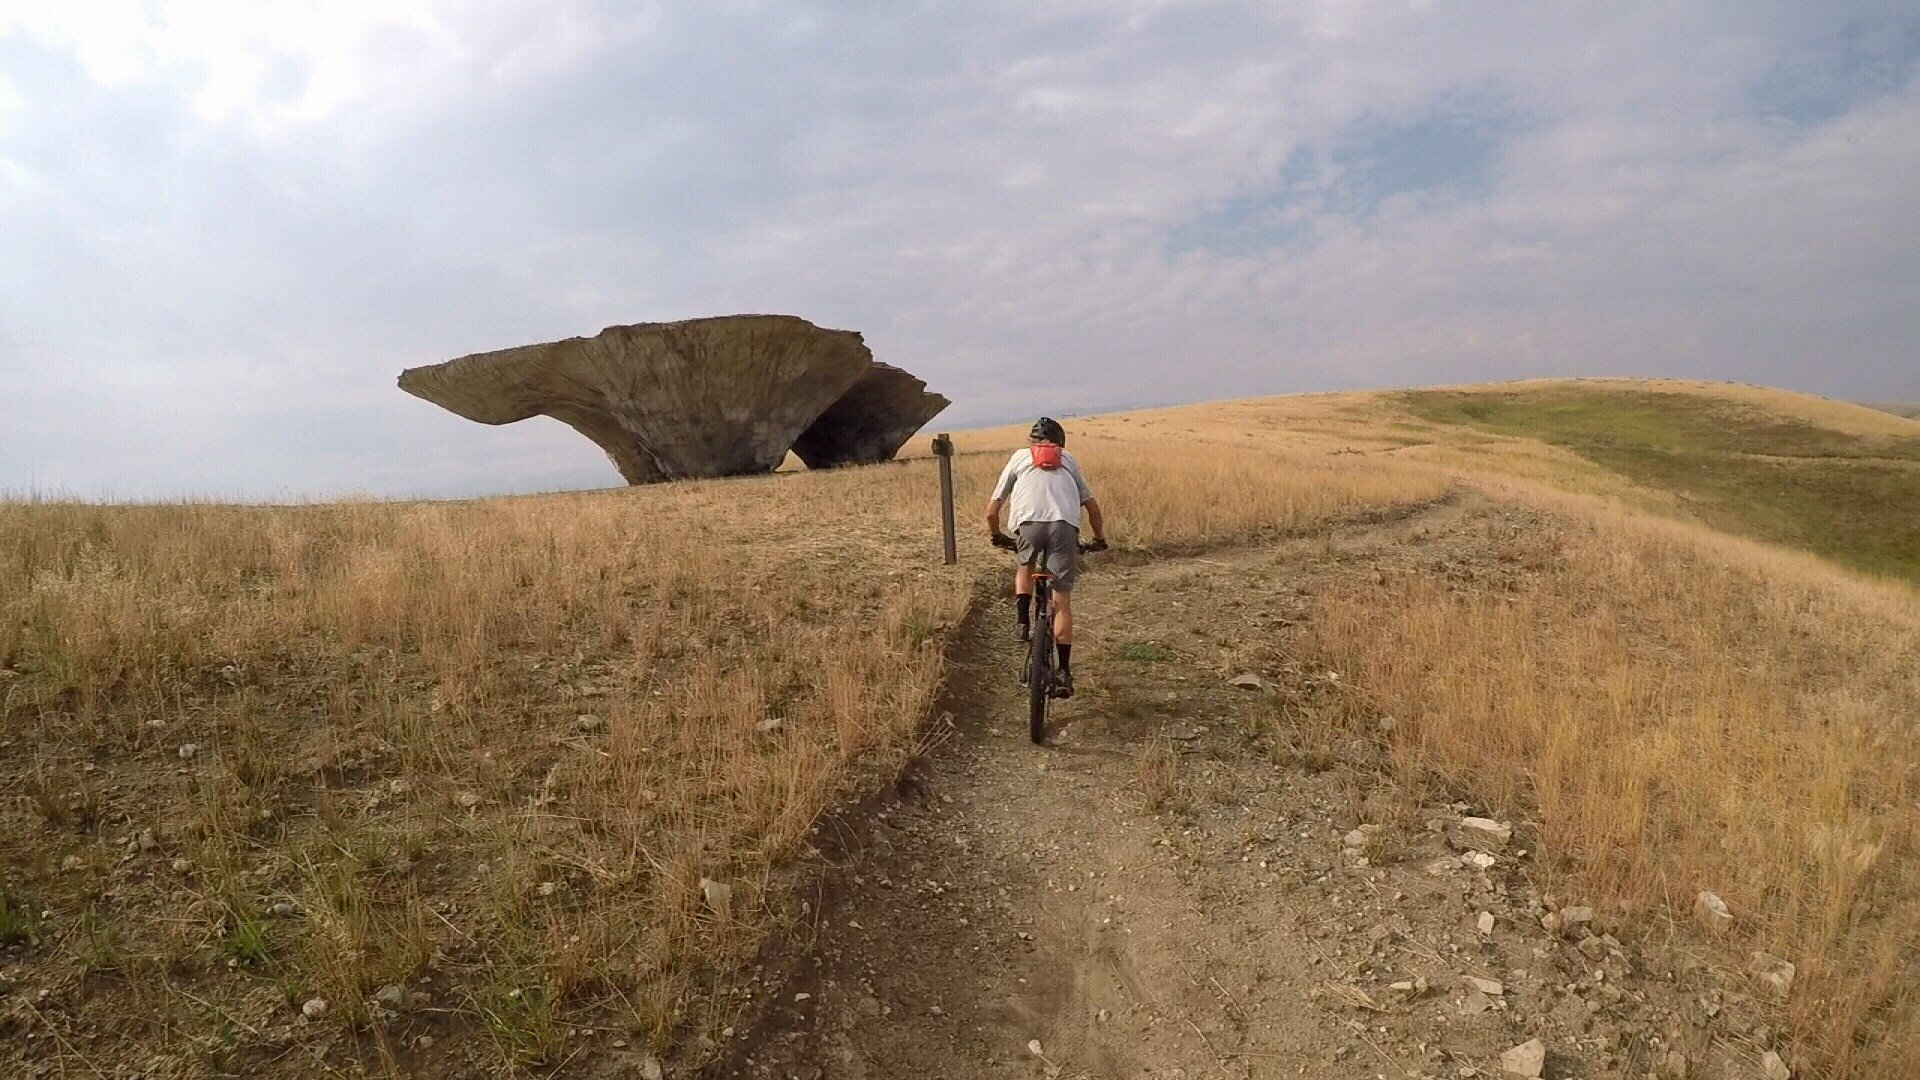 Riders can hit the trails alongside the sculptures (MTN News)